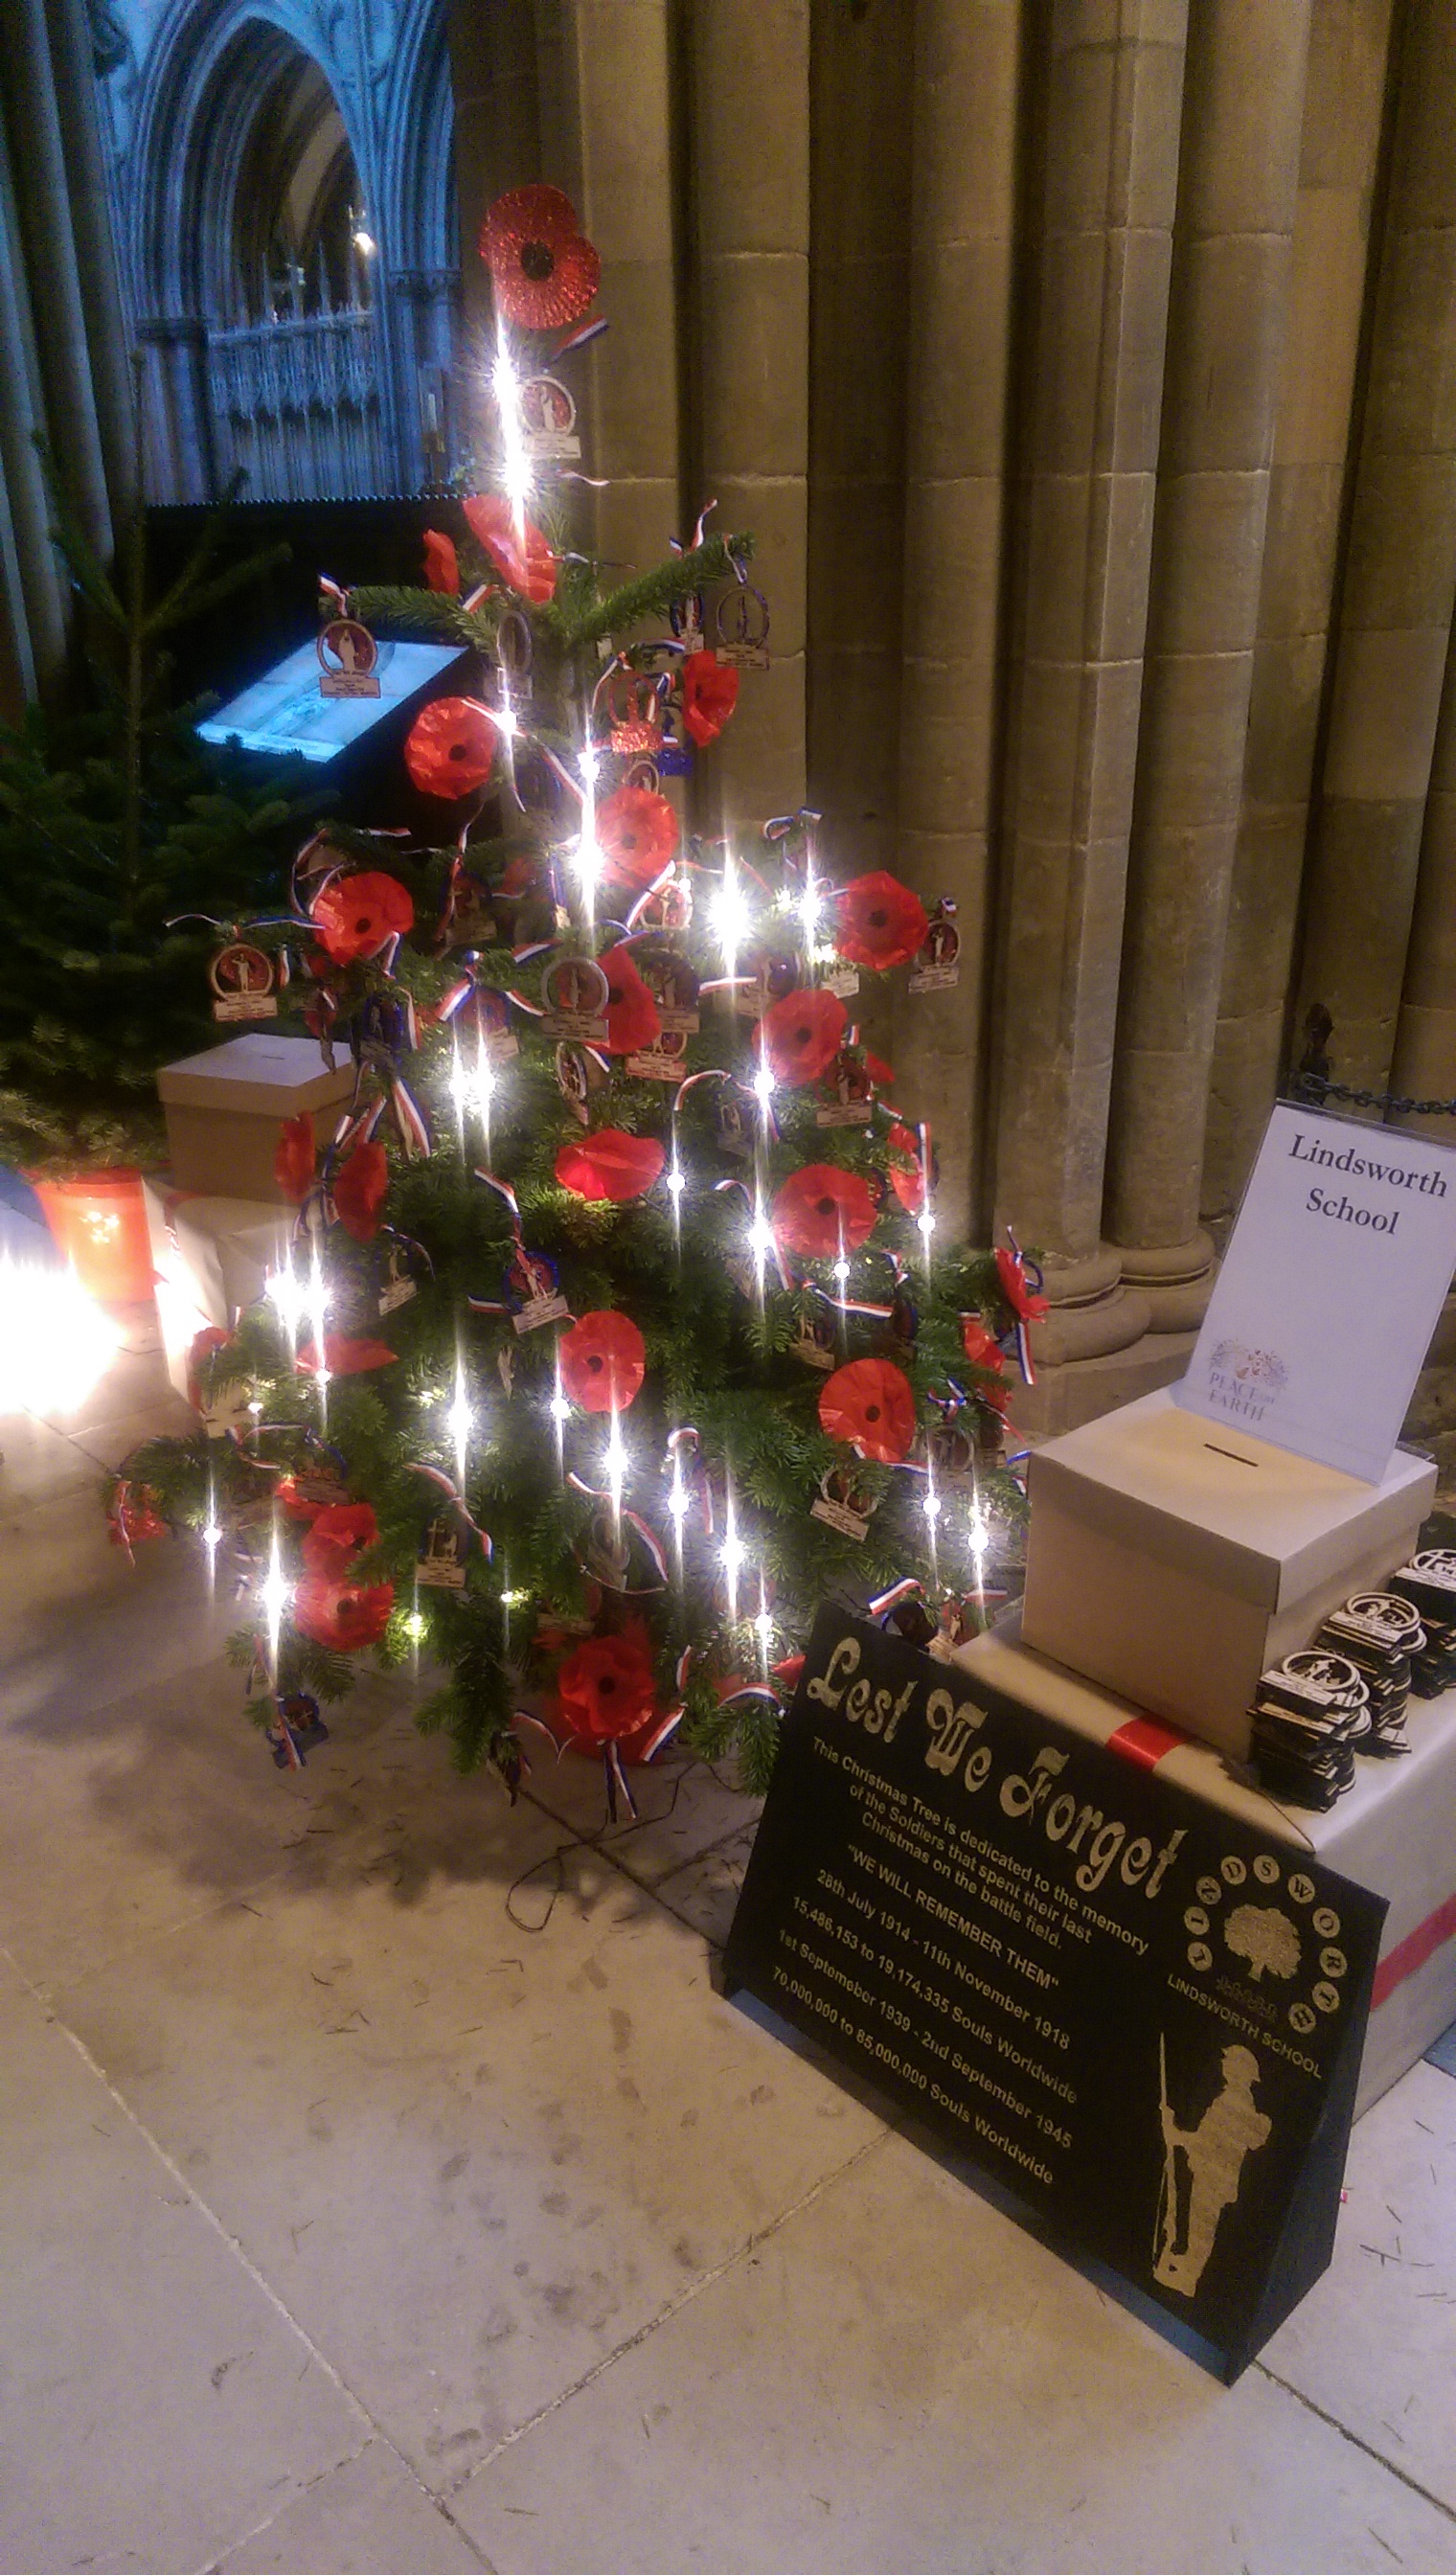 Lichfield Cathedral Memorial Christmas tree